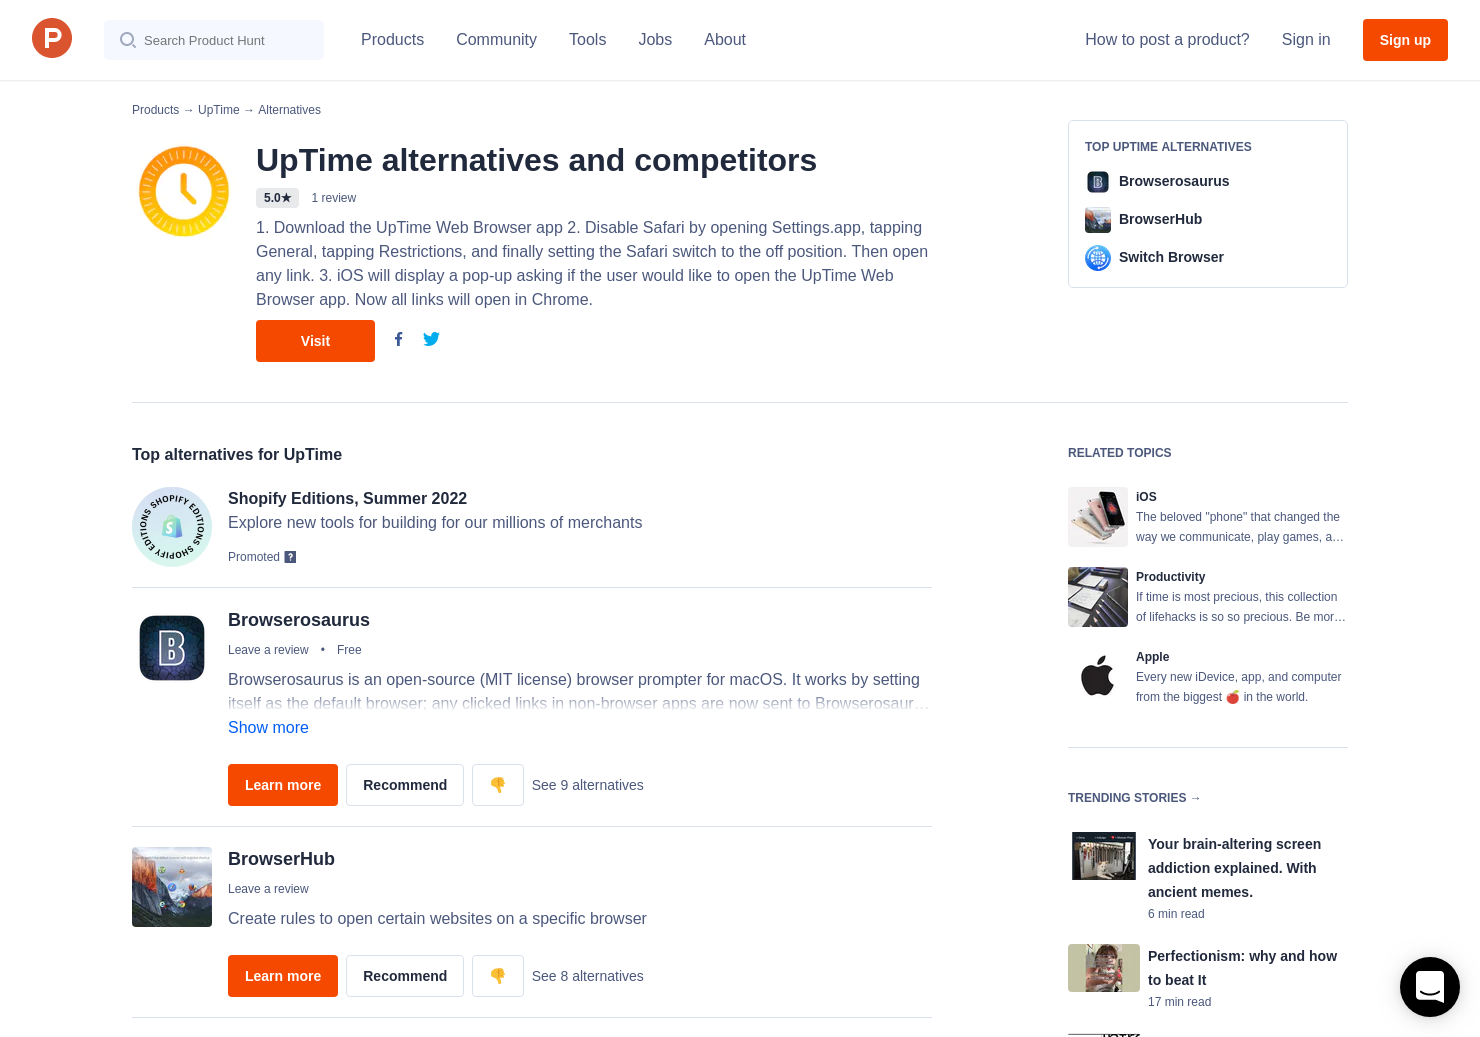 6 Alternatives to UpTime for iPhone | Product Hunt